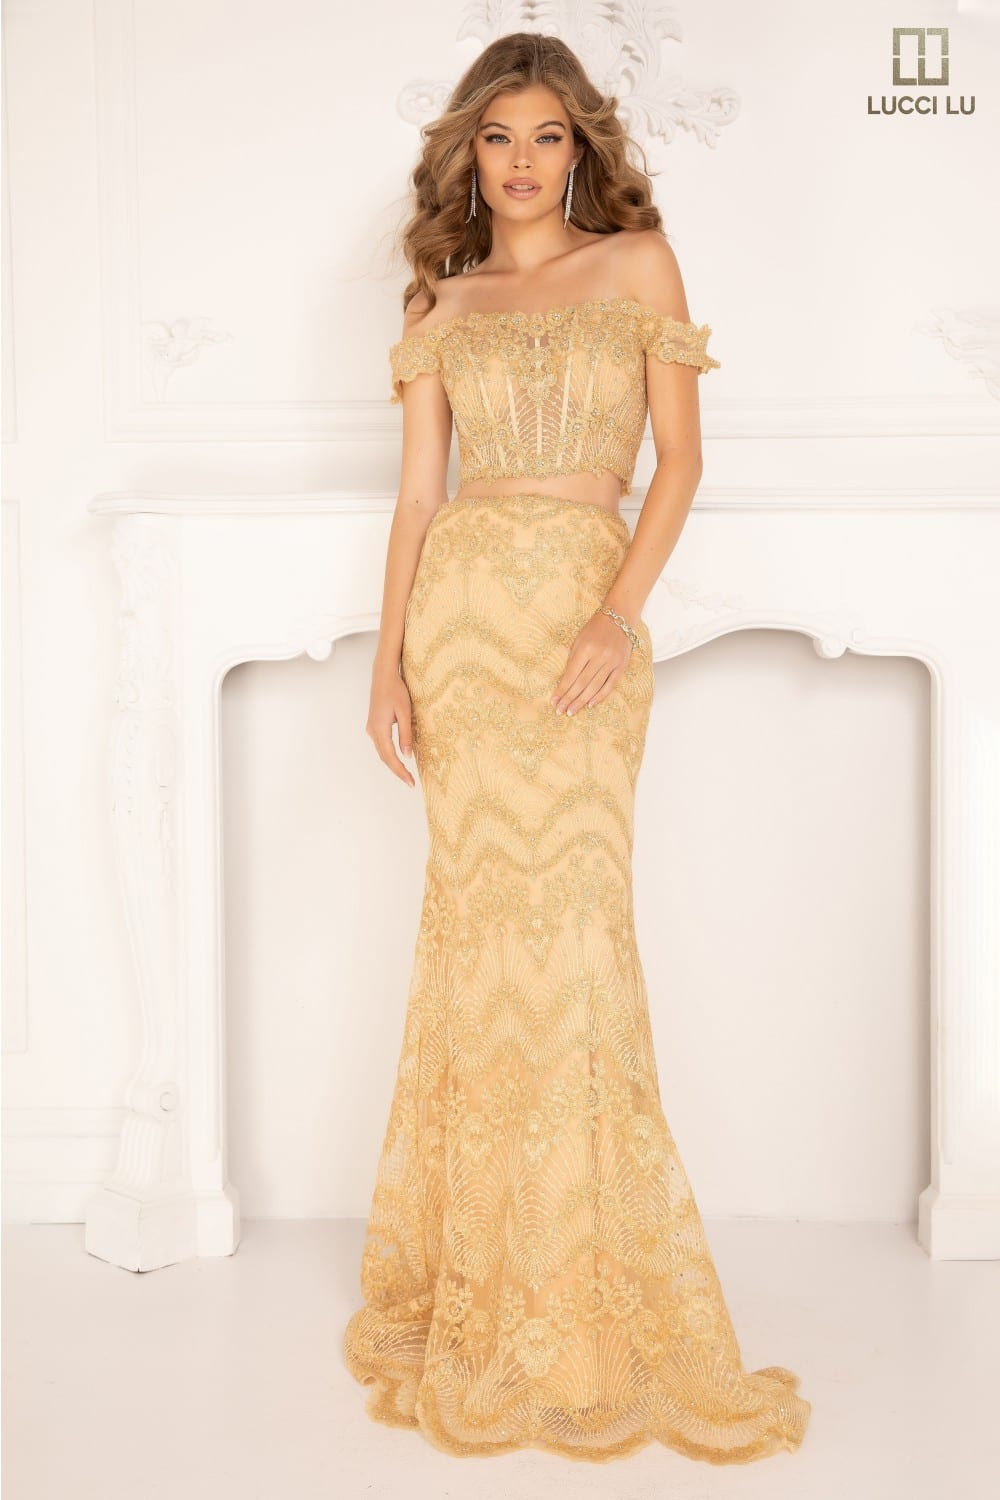 Plunging neckline front and back, beading, patterned skirt, mermaid Plunging neckline front and back, beading, patterned skirt, mermaid